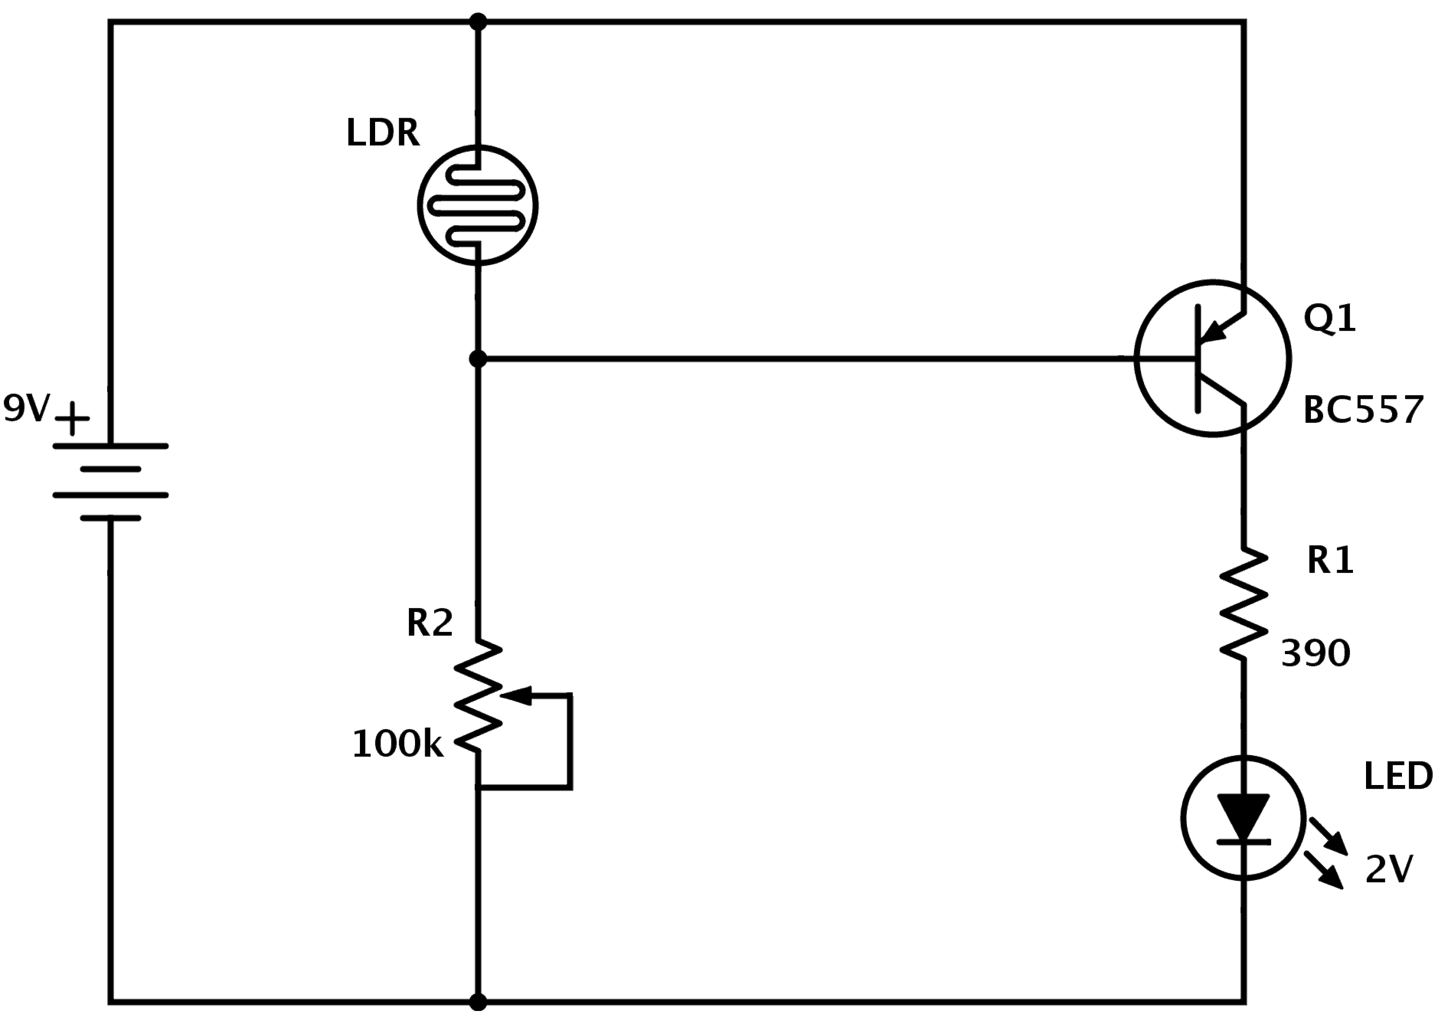 Ldr Circuit Diagram Build Electronic Circuits Simple Sound Effects Projects With Pnp Transistor Dark Detector